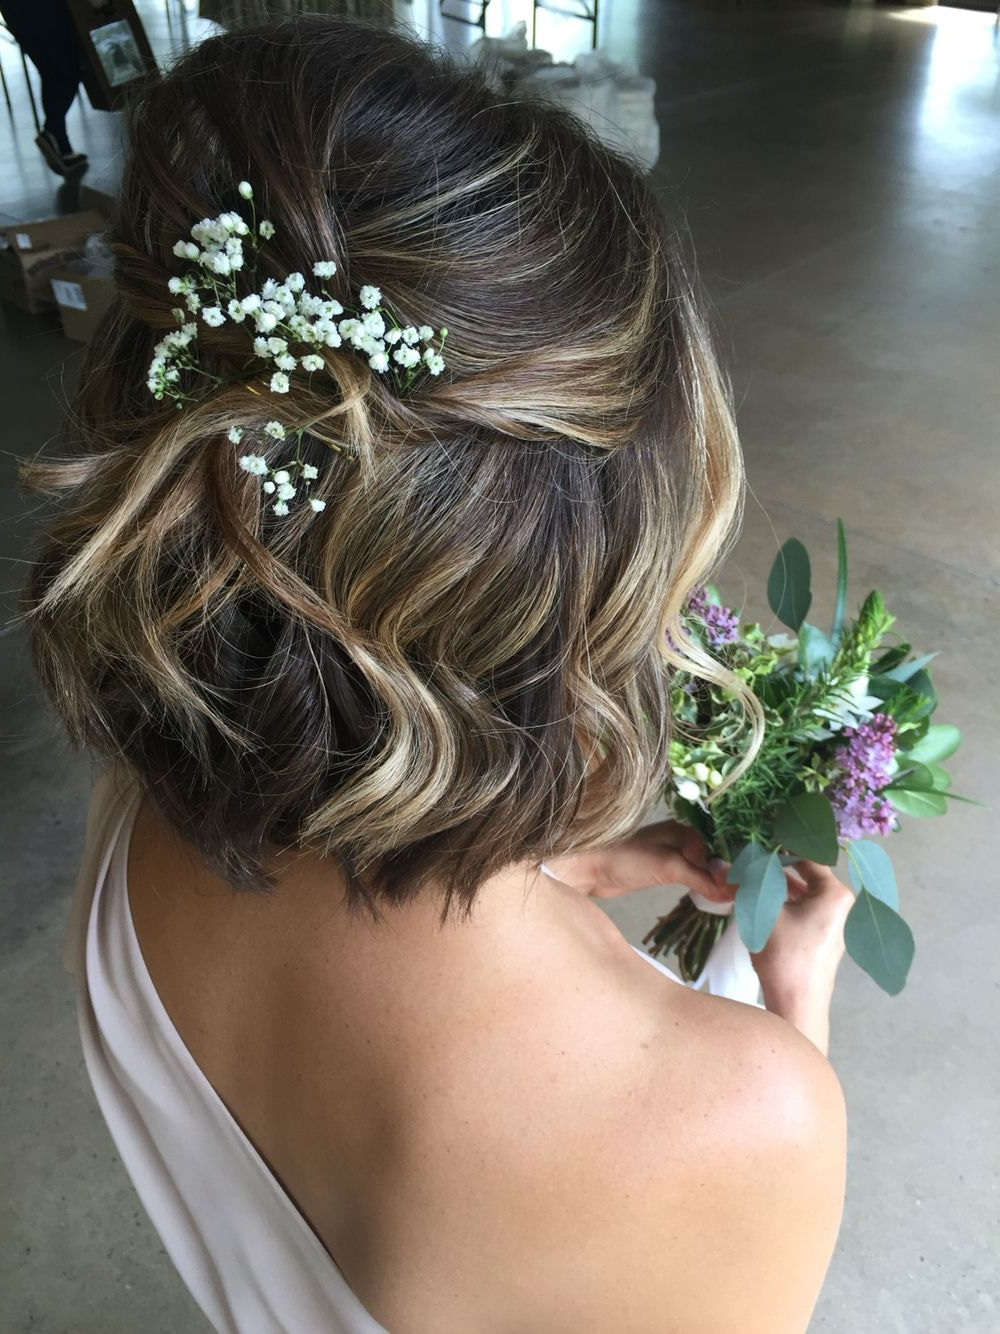 bridesmaid hairstyles for short hair | best hairstyles for